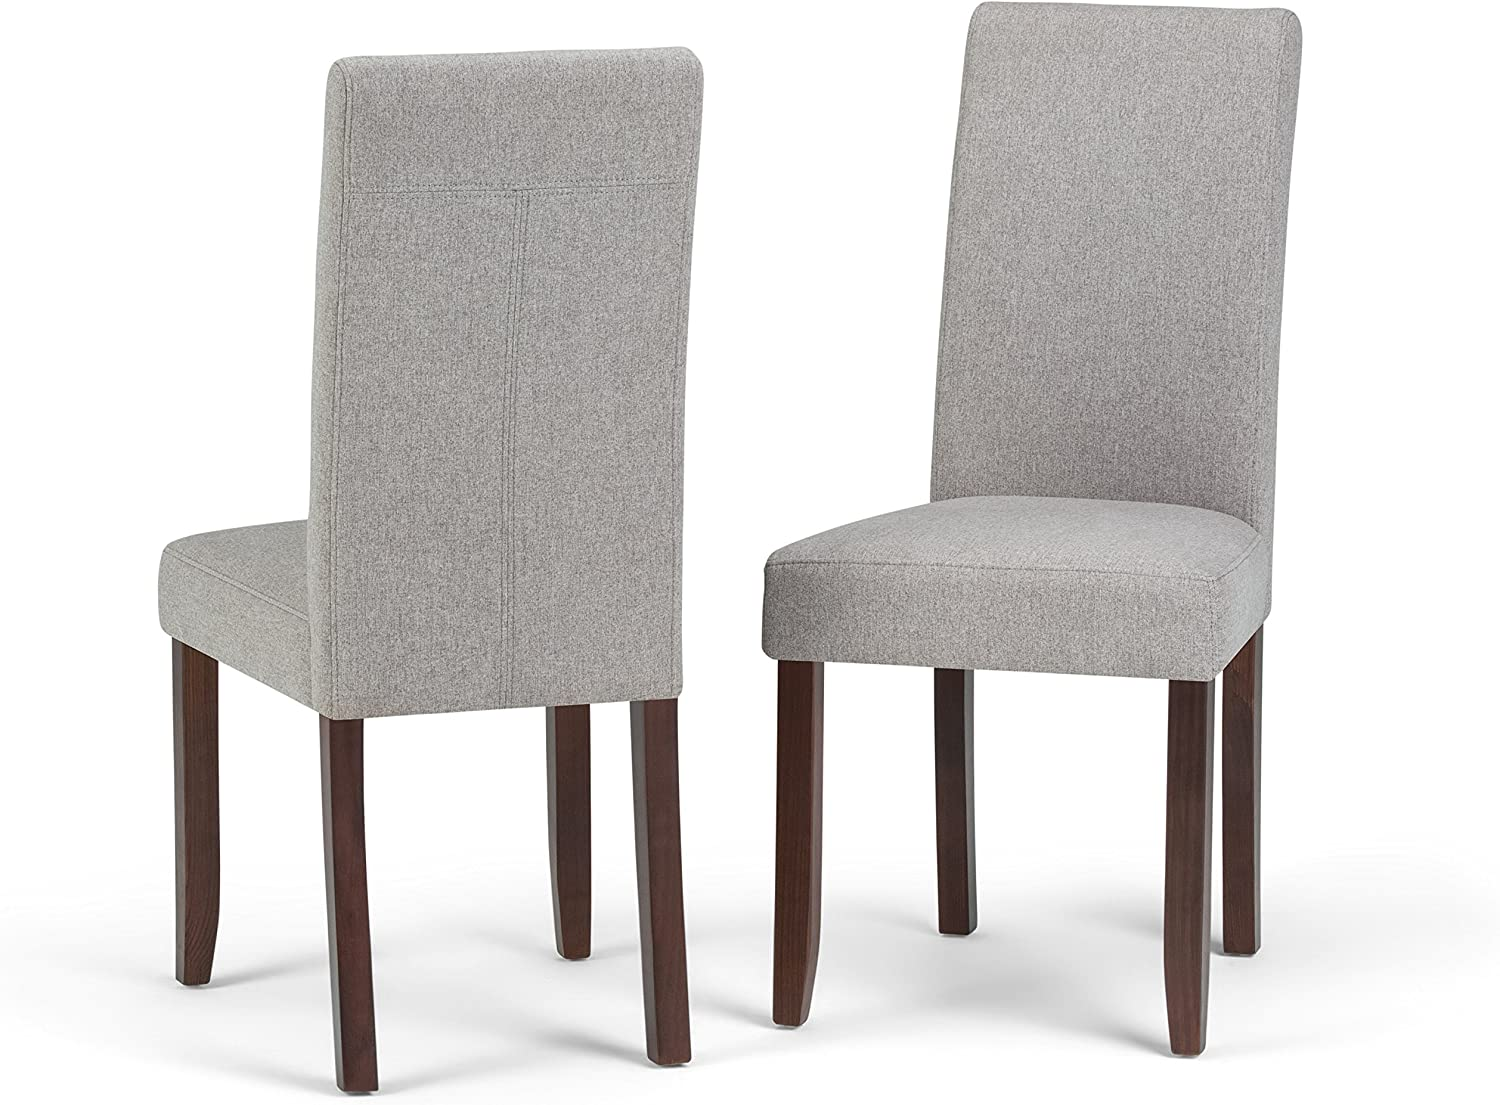 Simplihome Acadian Contemporary Parson Dining Chair Set Of 2 In Cloud Grey Linen Look Fabric Chairs Amazon Com